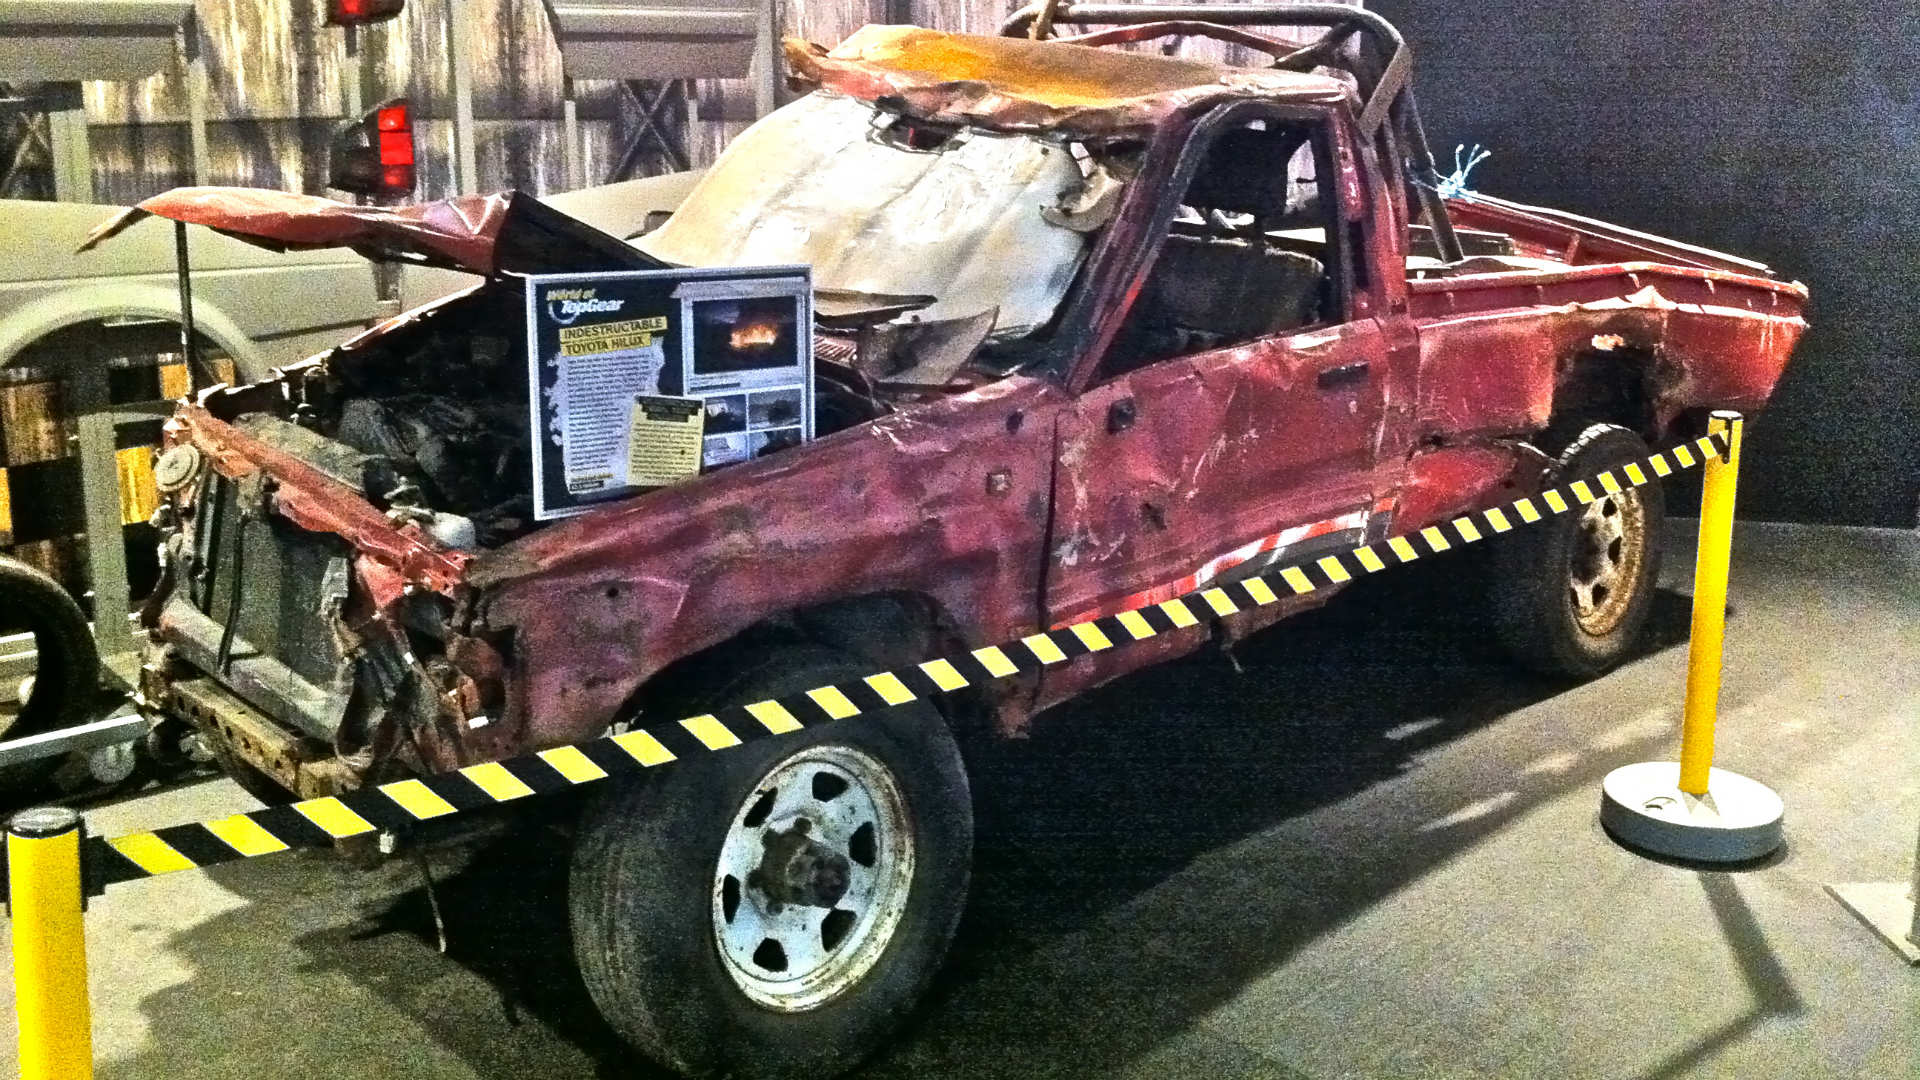 Toyota Hilux from Top Gear